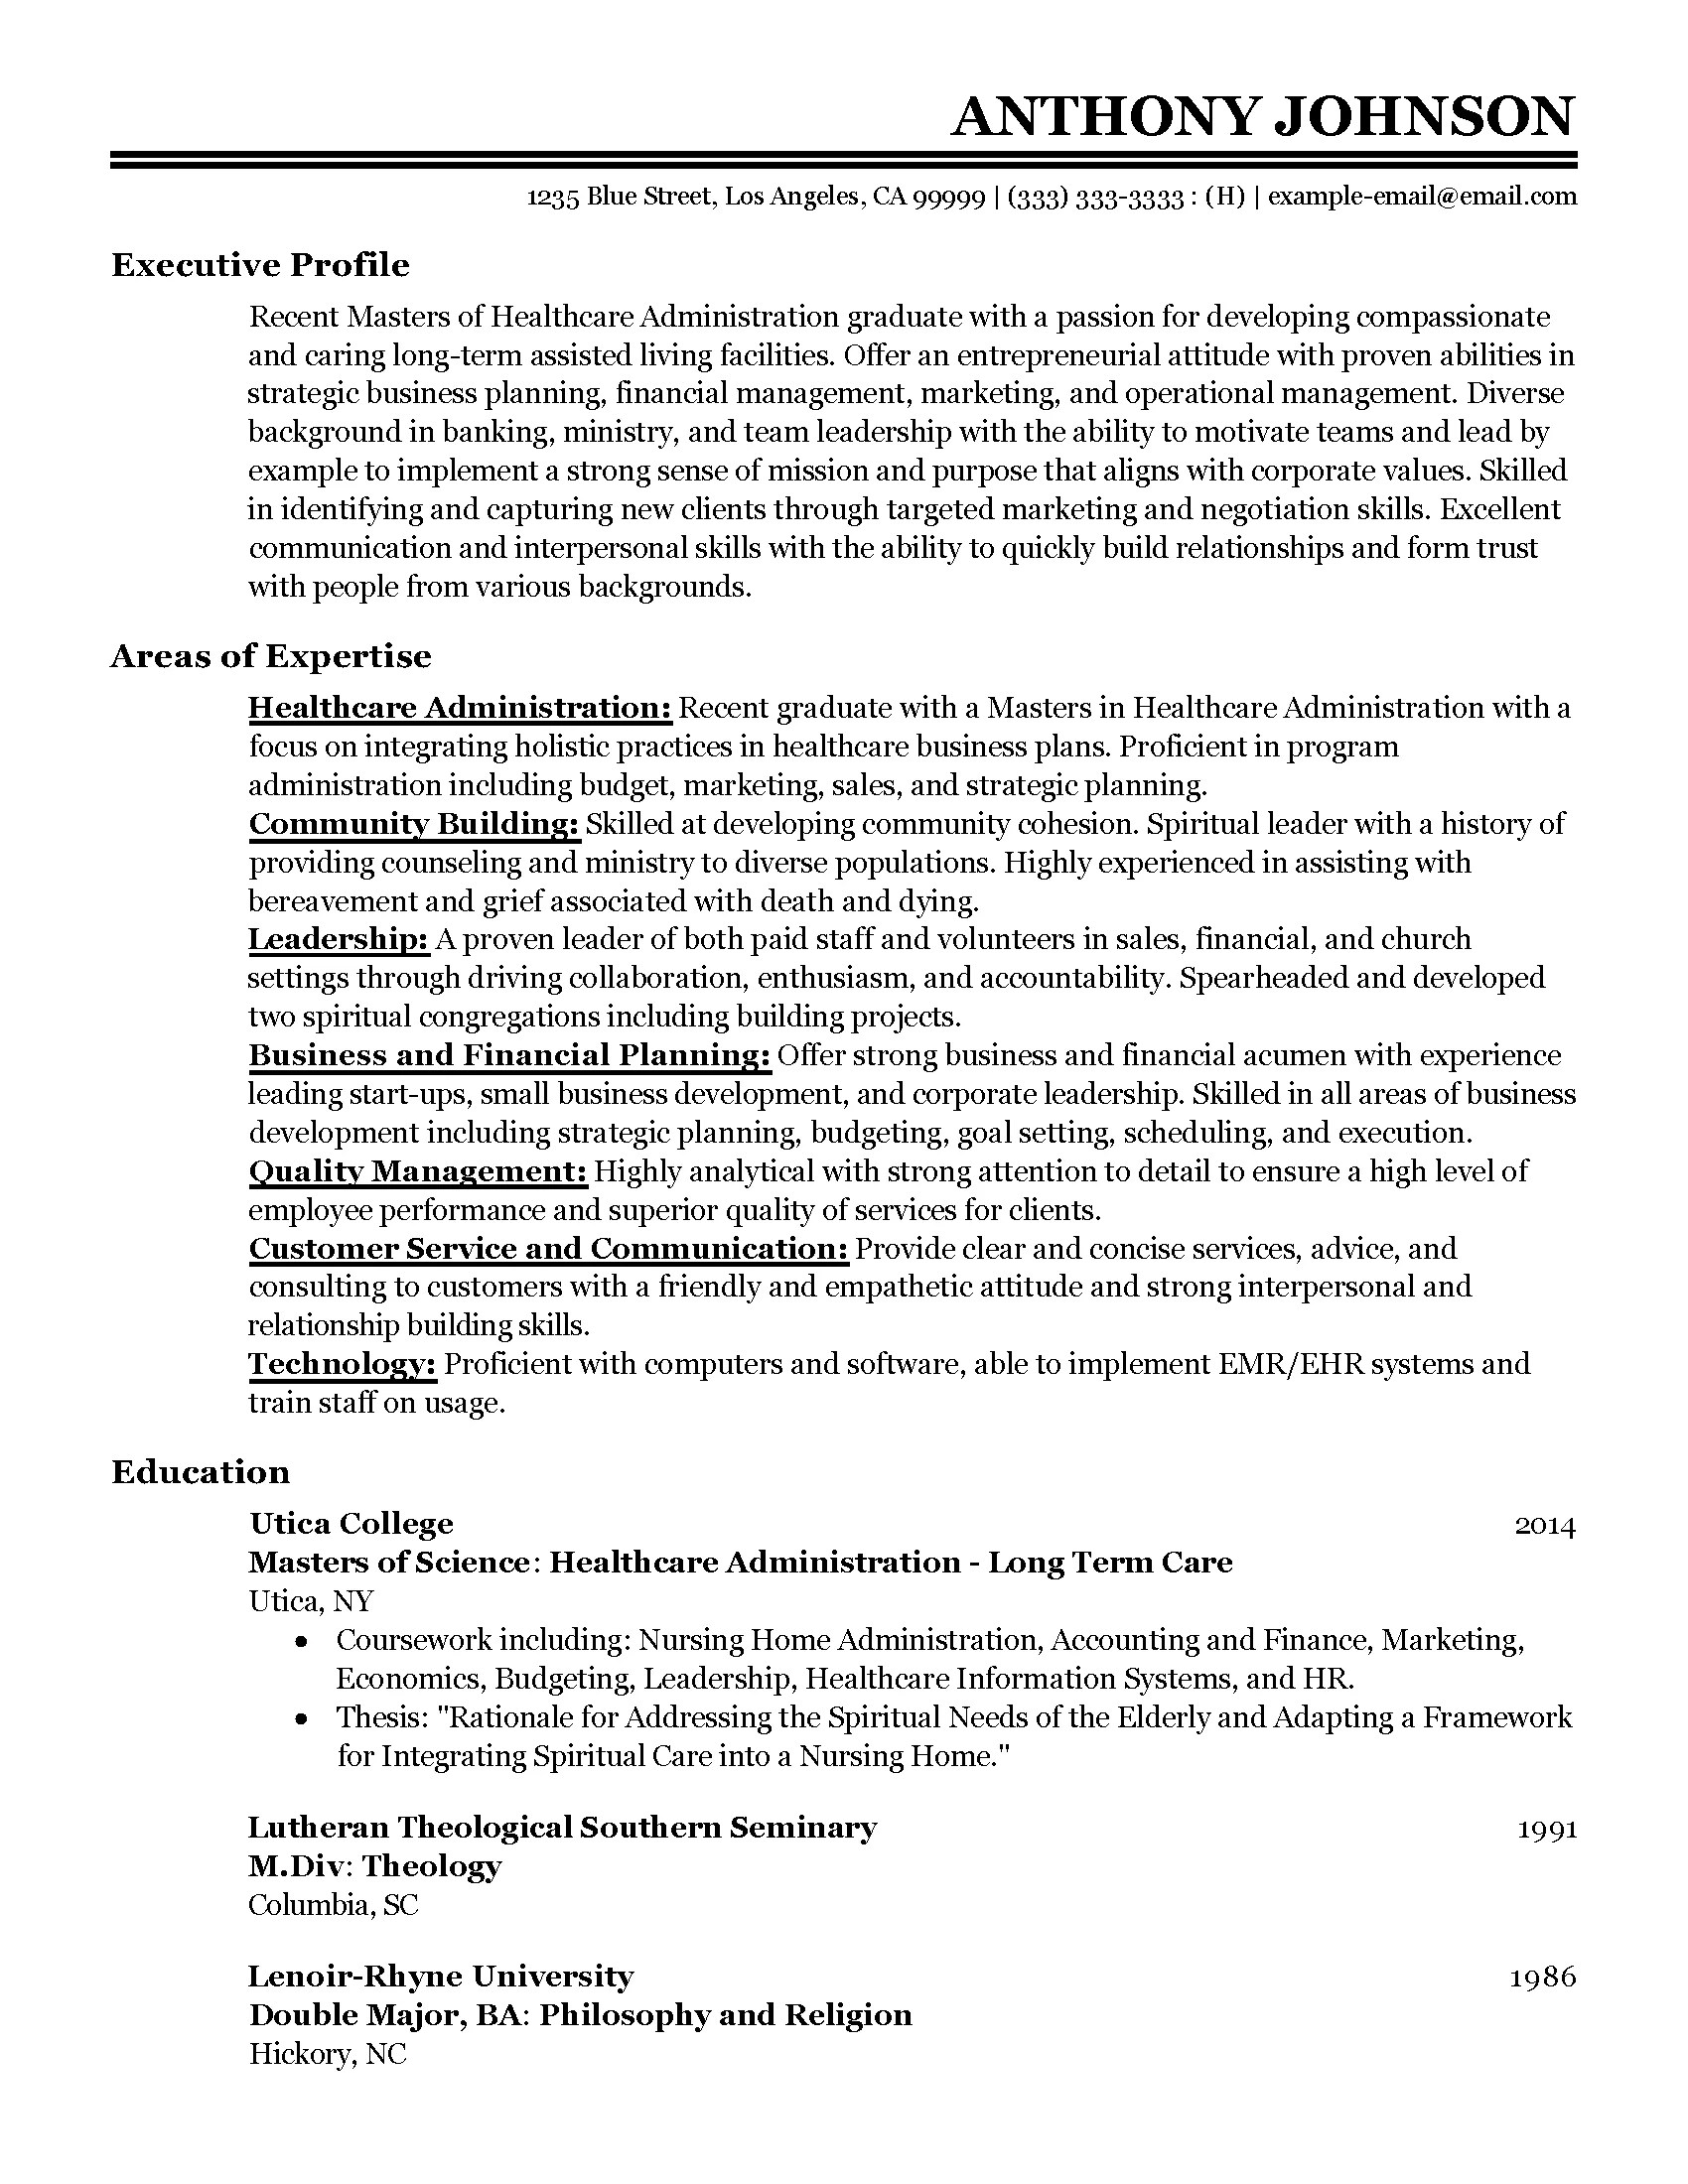 sample resume software engineer one year experience help writing - Resume Objective Entry Level Healthcare